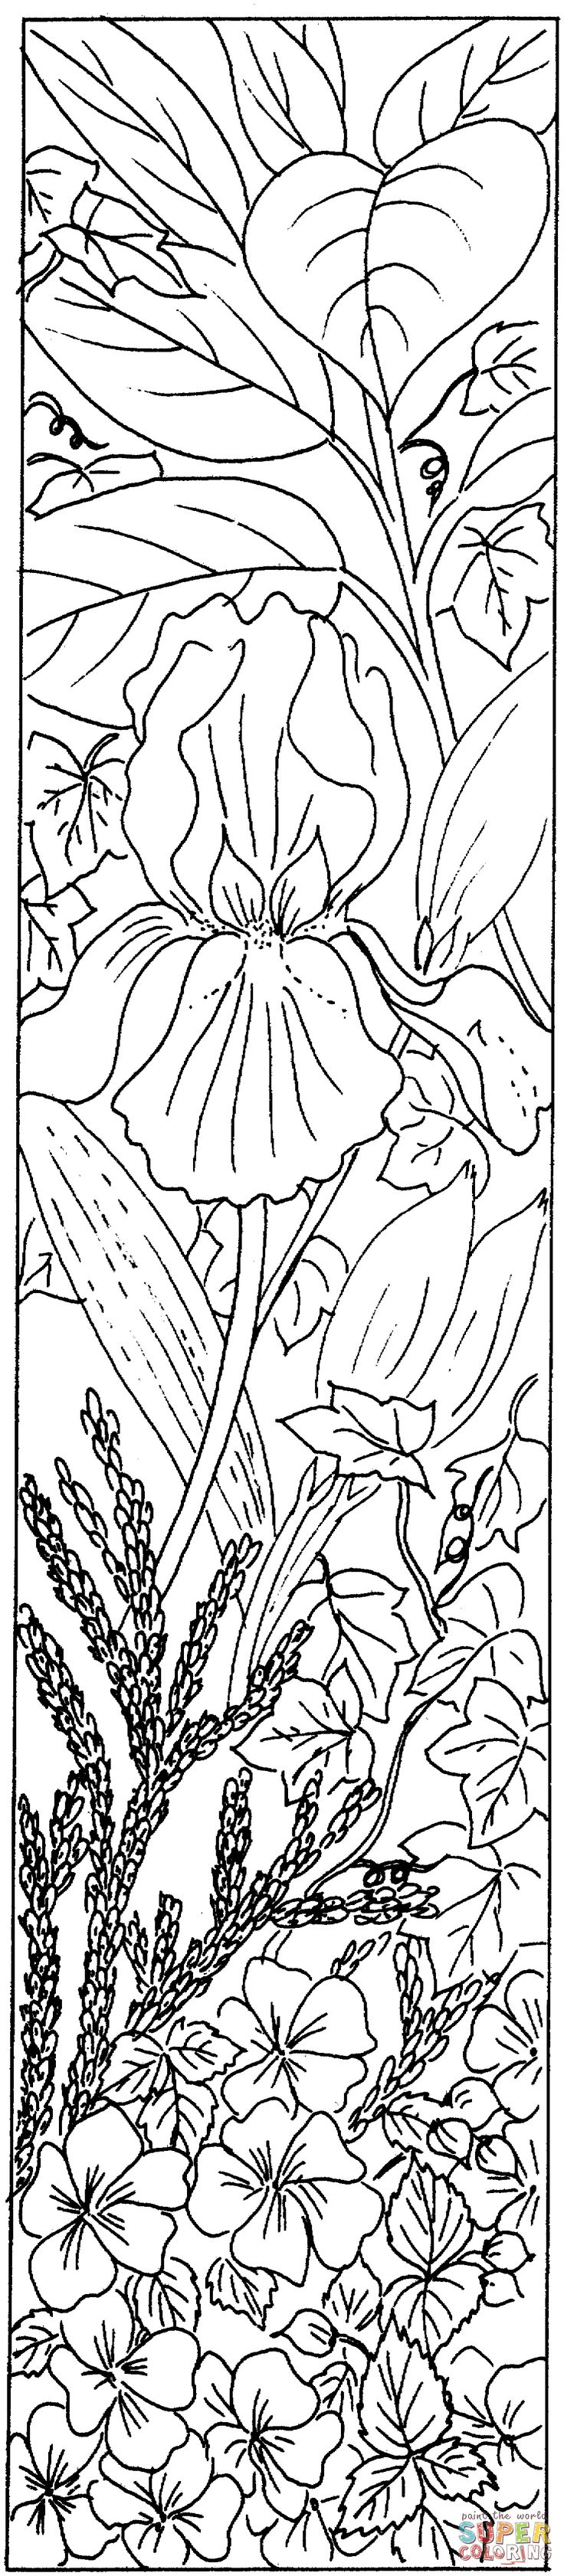 12 best zentangle images on pinterest coloring sheets coloring